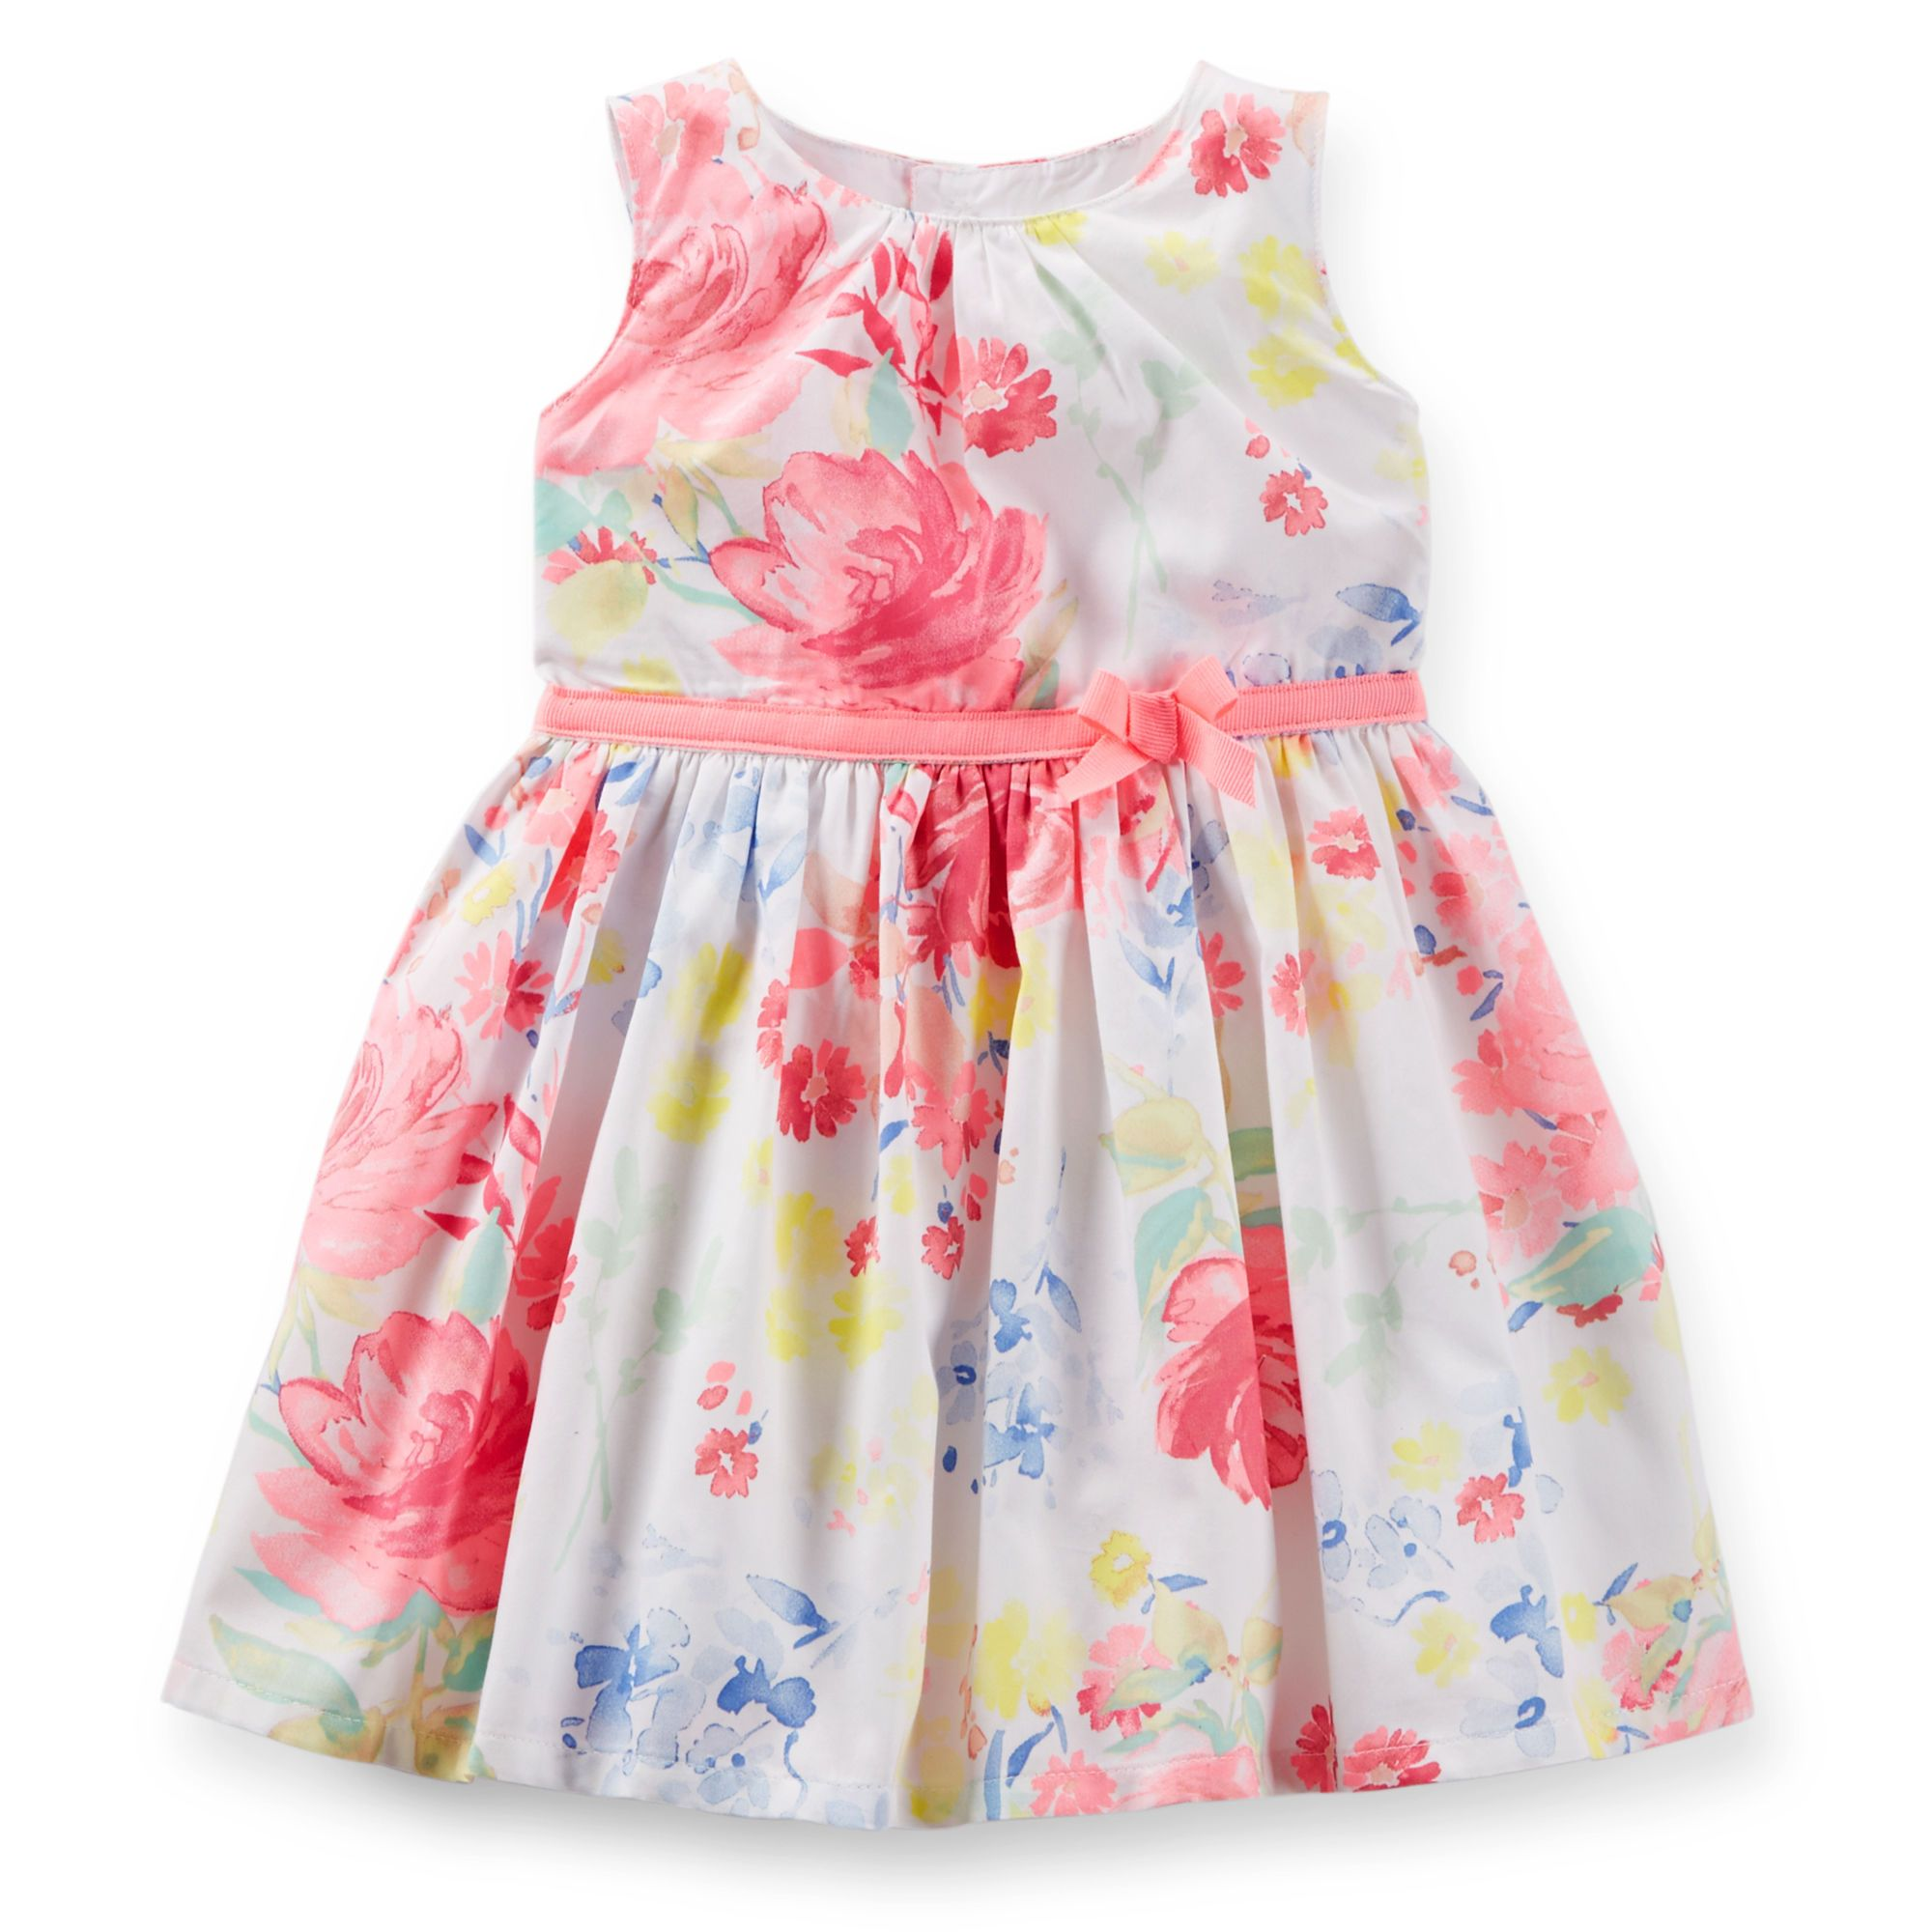 Carters Little Collections Easter Outfit Baby//Toddler Girl Pink//White Skirted